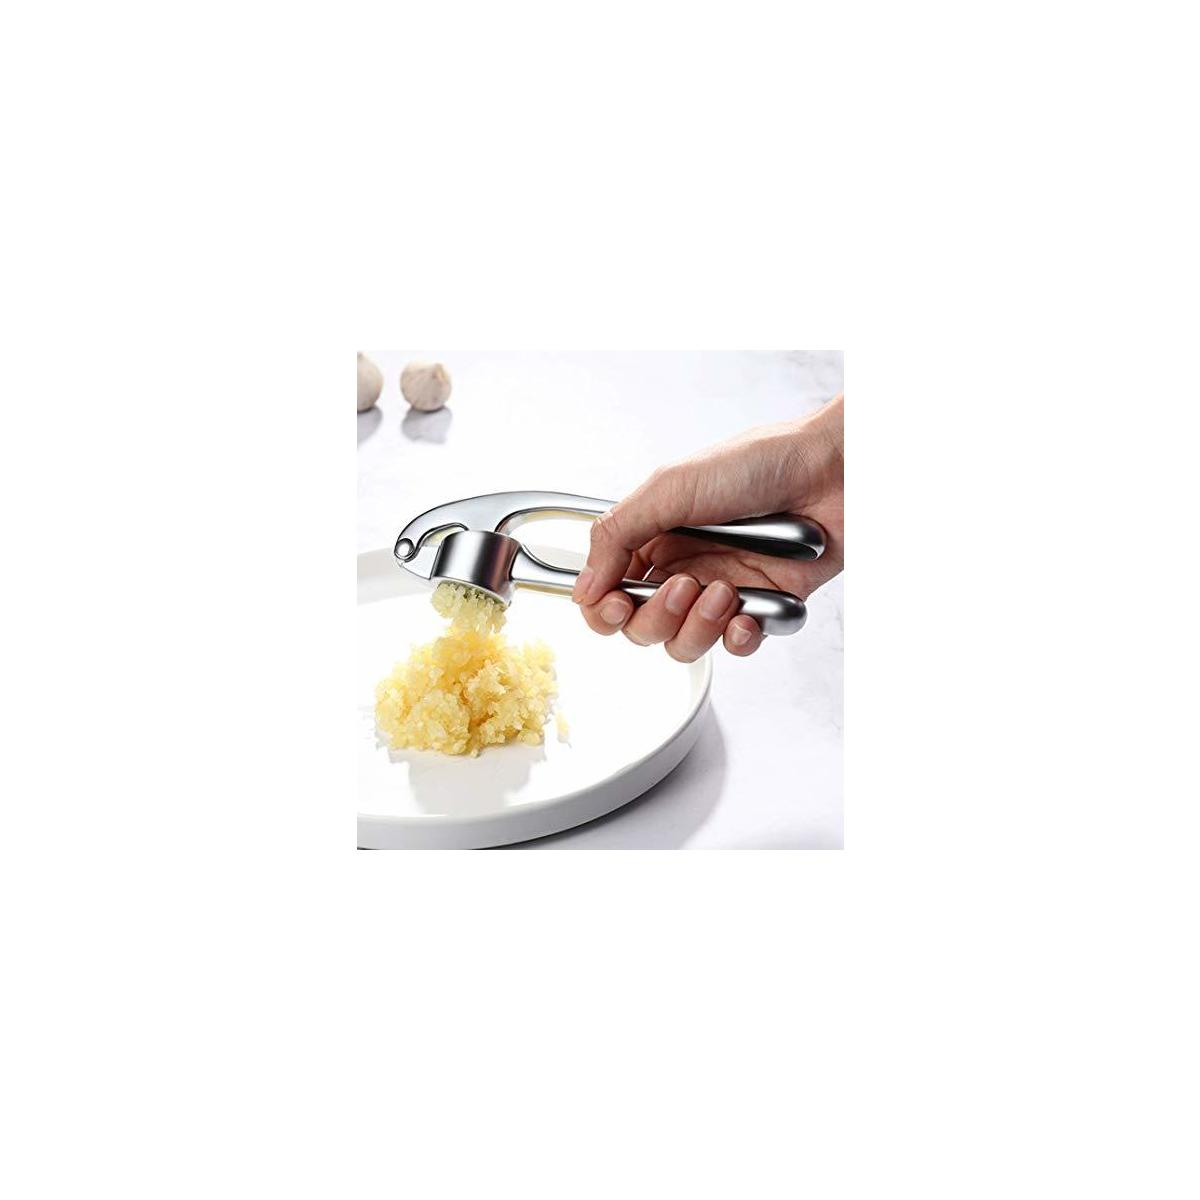 Garlic Press, Ruler Garlic Crusher and Slicer - Food Safe, Zinc Alloy Made, Durable and Professional,Easy to Clean, Rust Proof